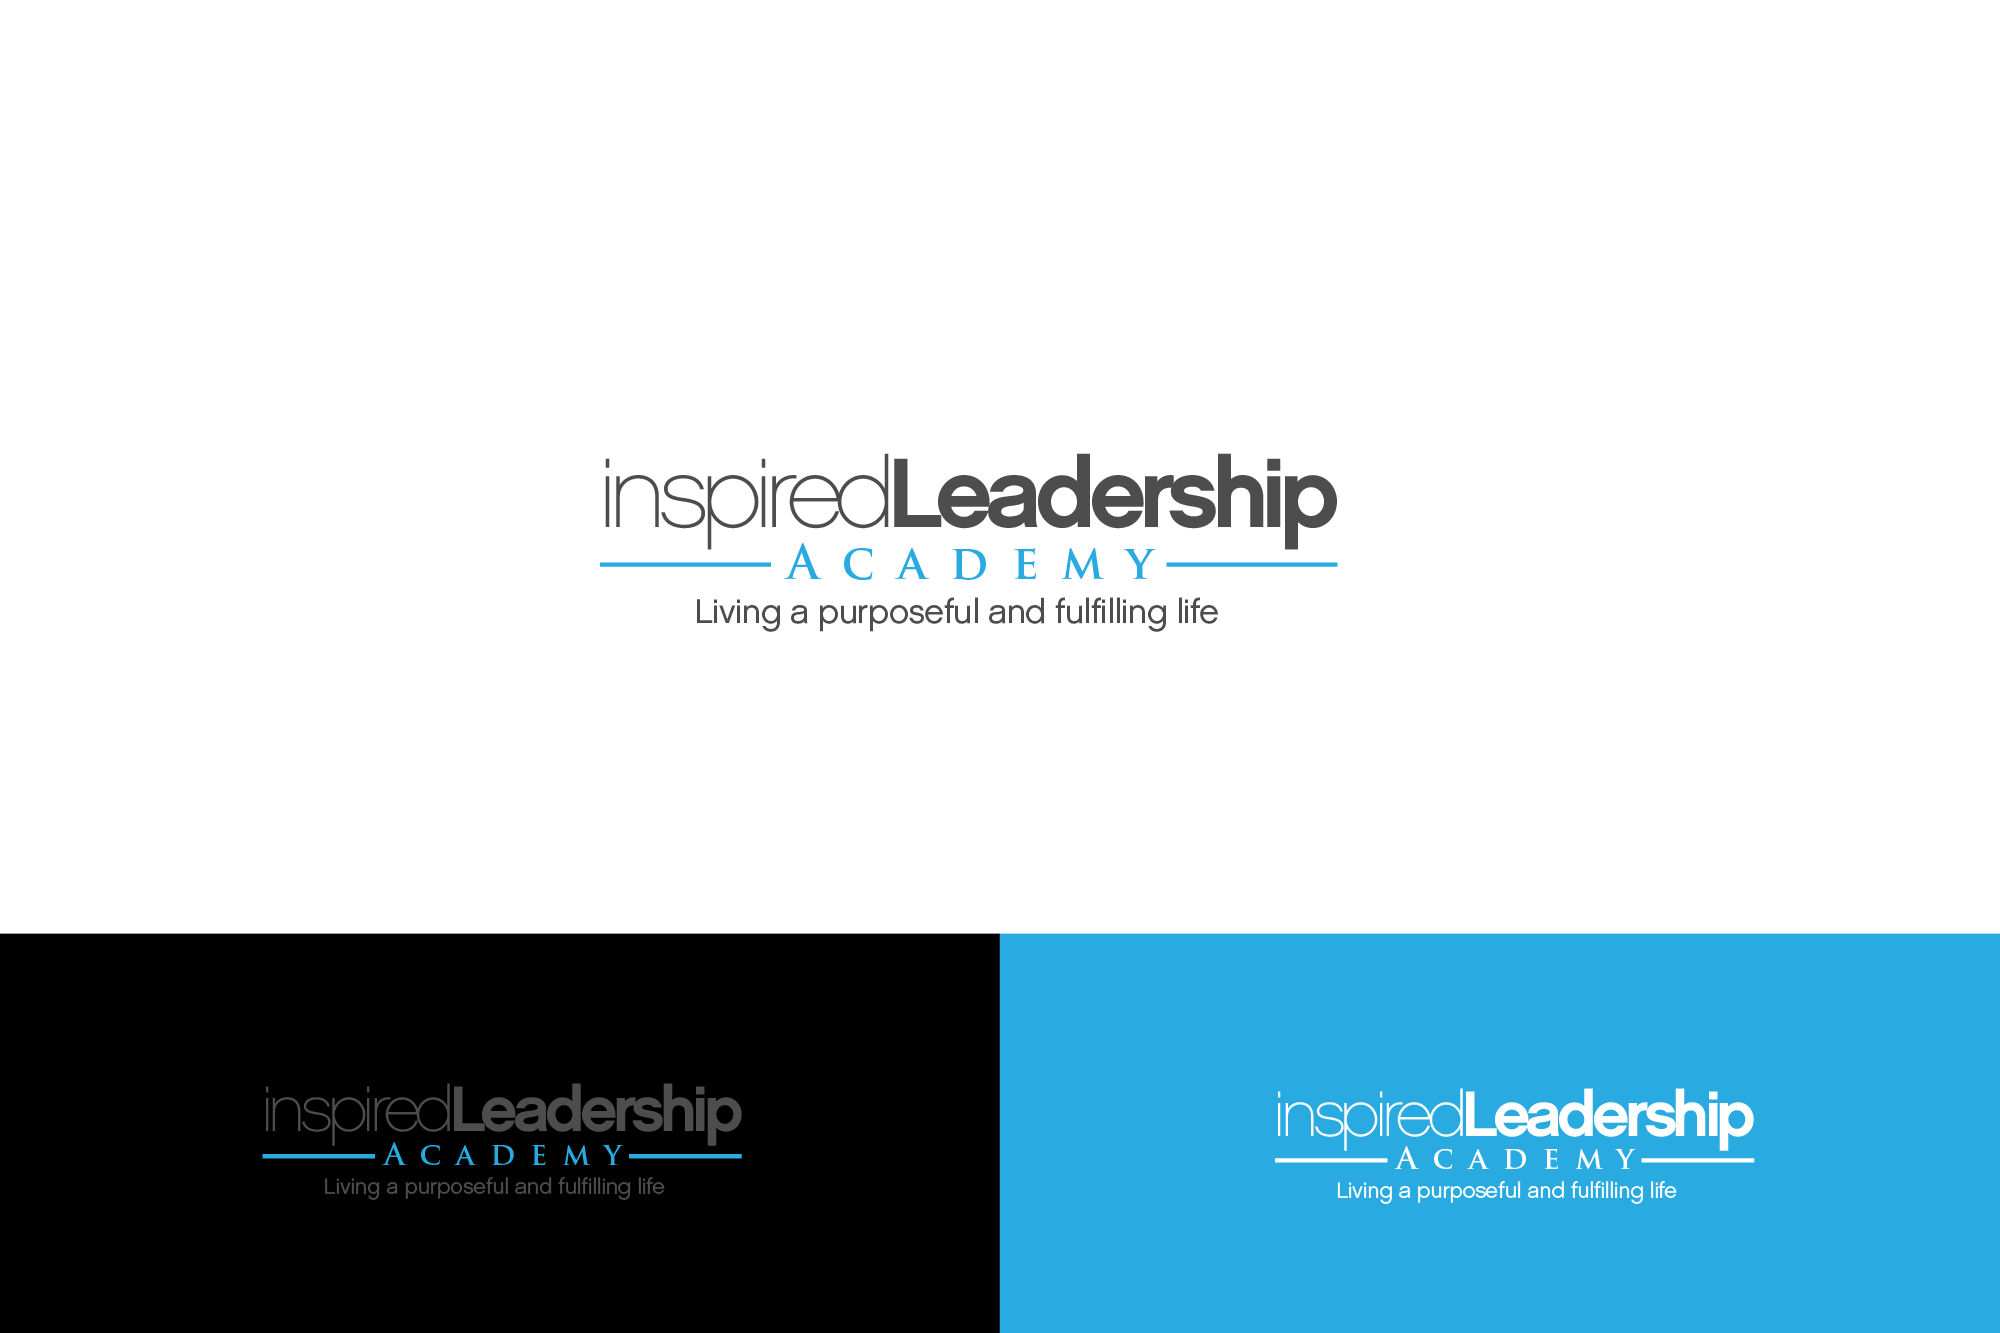 New logo wanted for inspired leadership academy